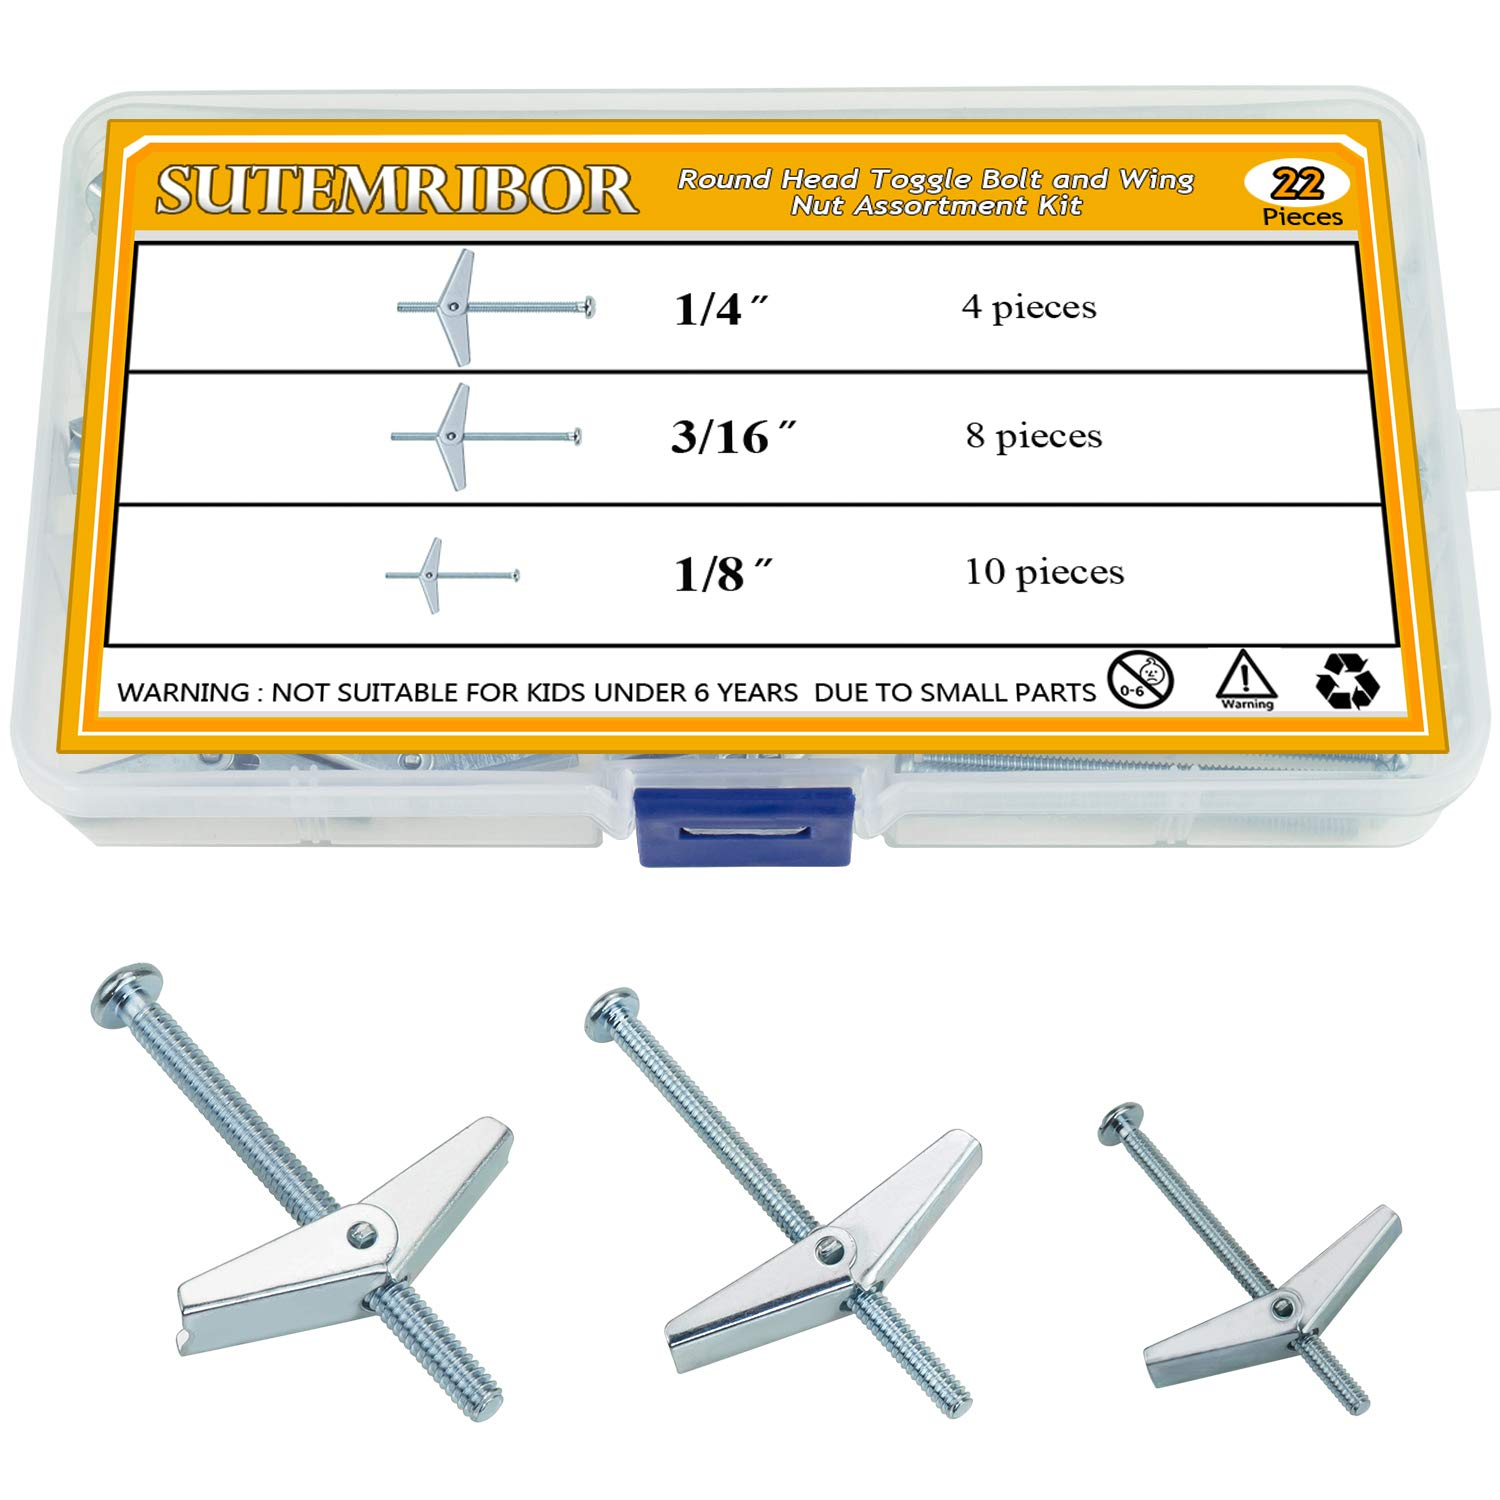 Sutemribor 1/8 Inch, 3/16Inch, 1/4Inch Toggle Bolt and Wing Nut for Hanging Heavy Items on Drywall, 22 PCS